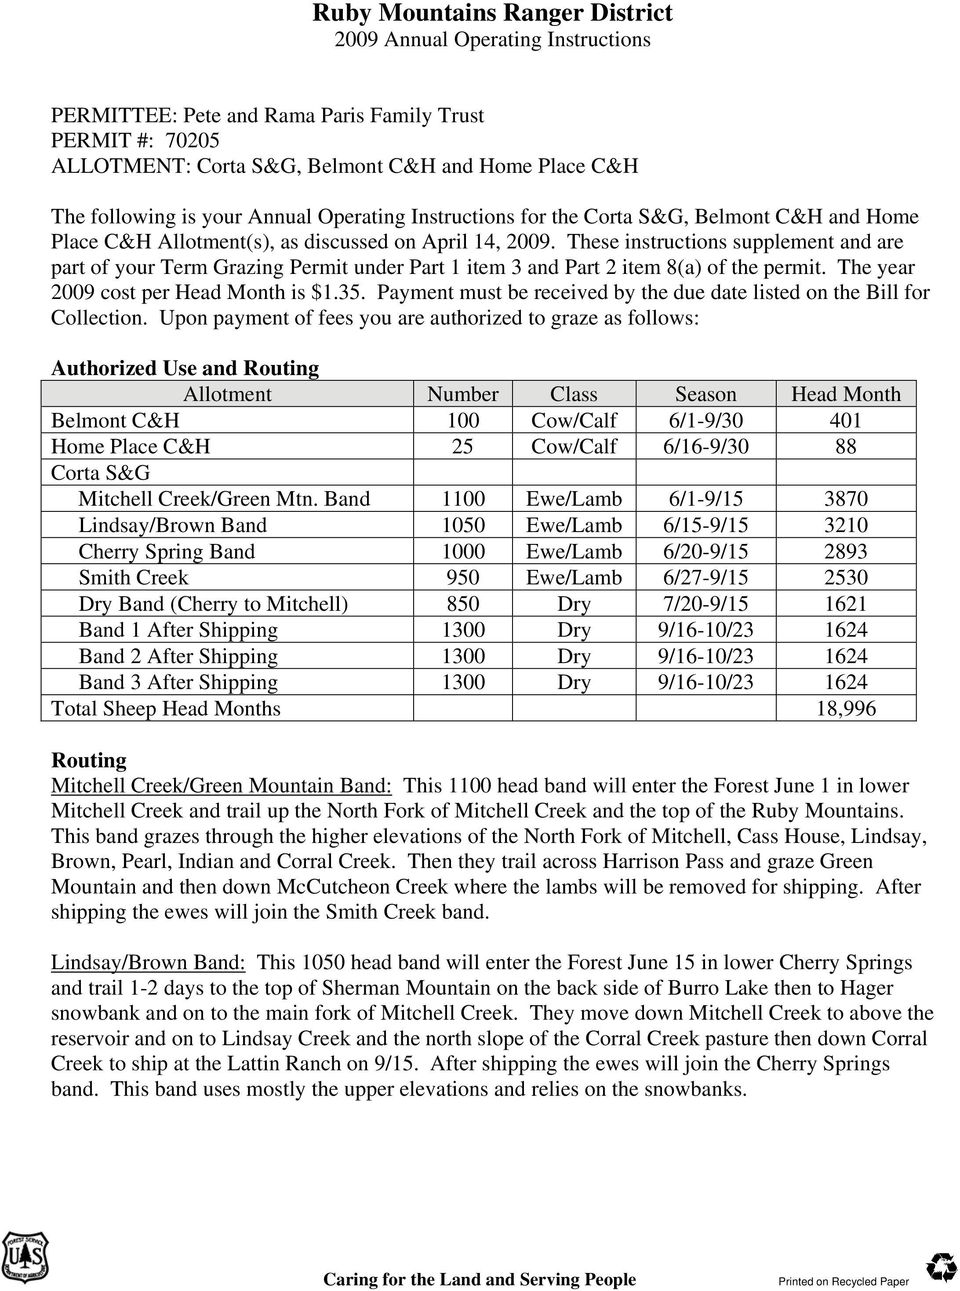 These instructions supplement and are part of your Term Grazing Permit under Part 1 item 3 and Part 2 item 8(a) of the permit. The year 2009 cost per Head Month is $1.35.